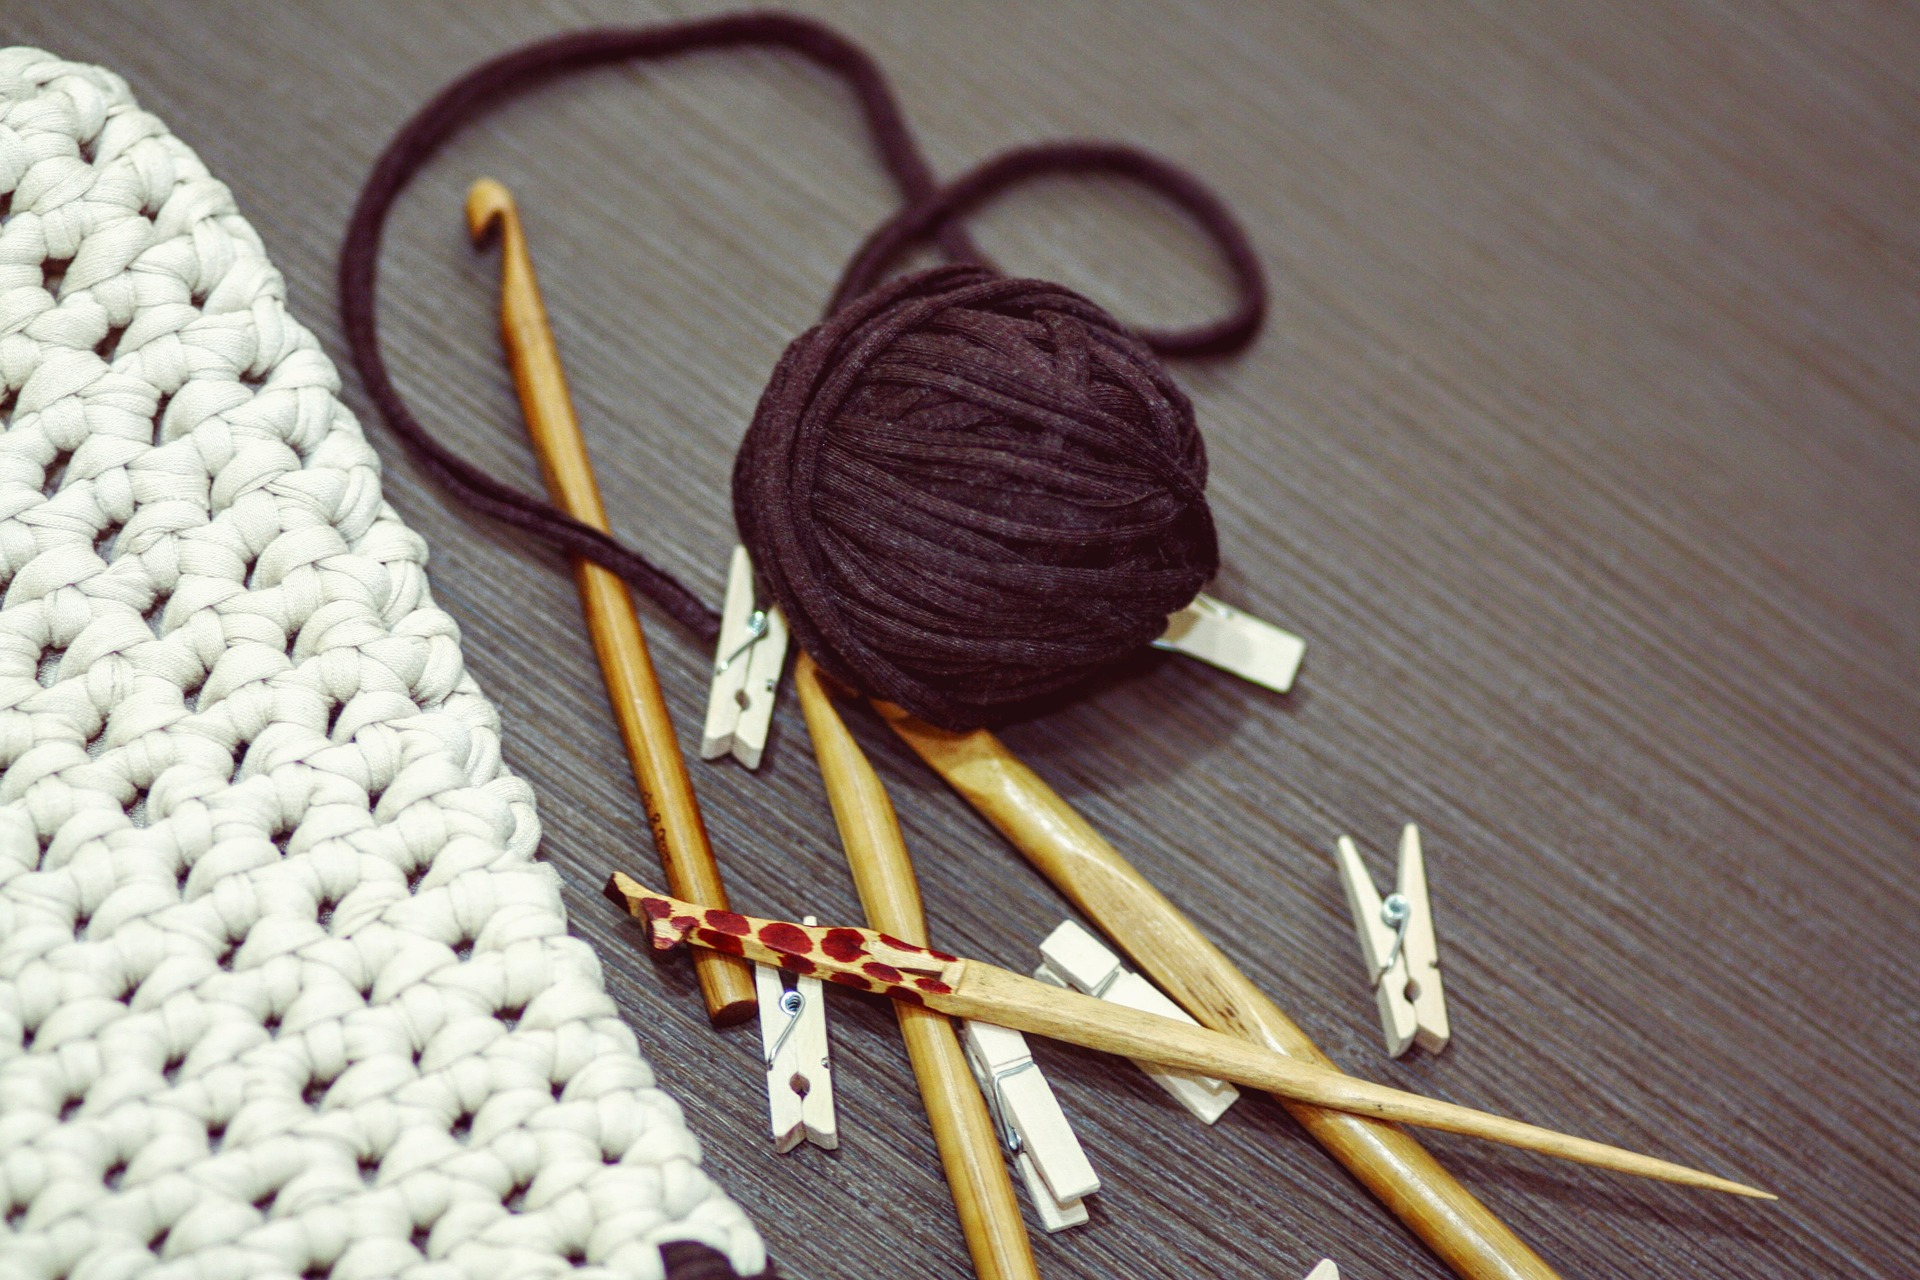 Learn to Crochet the Easy Way – Step by Step Crochet Tutorials for Beginners